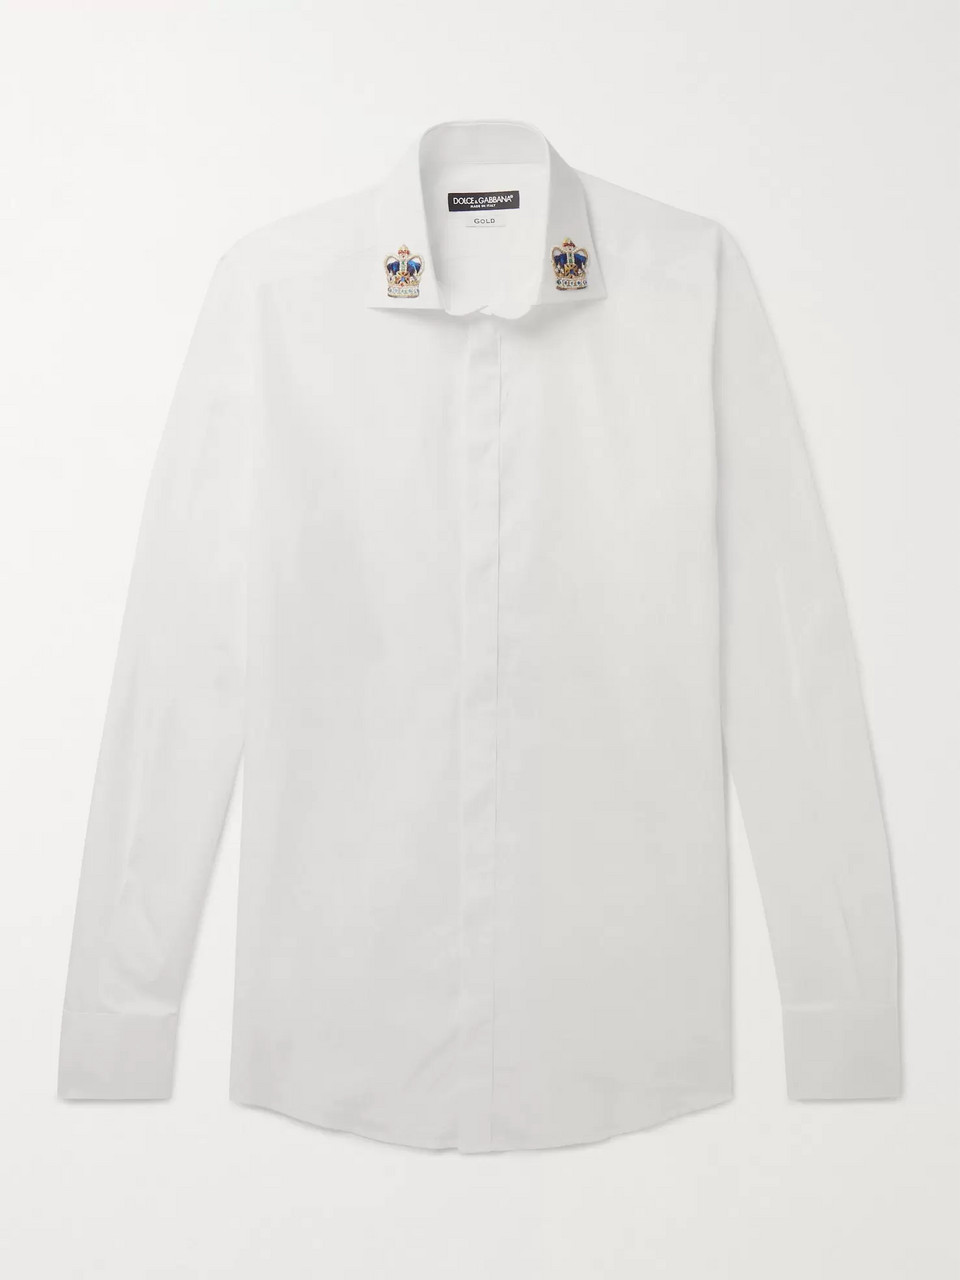 Dolce & Gabbana Slim-Fit Appliquéd Cotton-Poplin Shirt